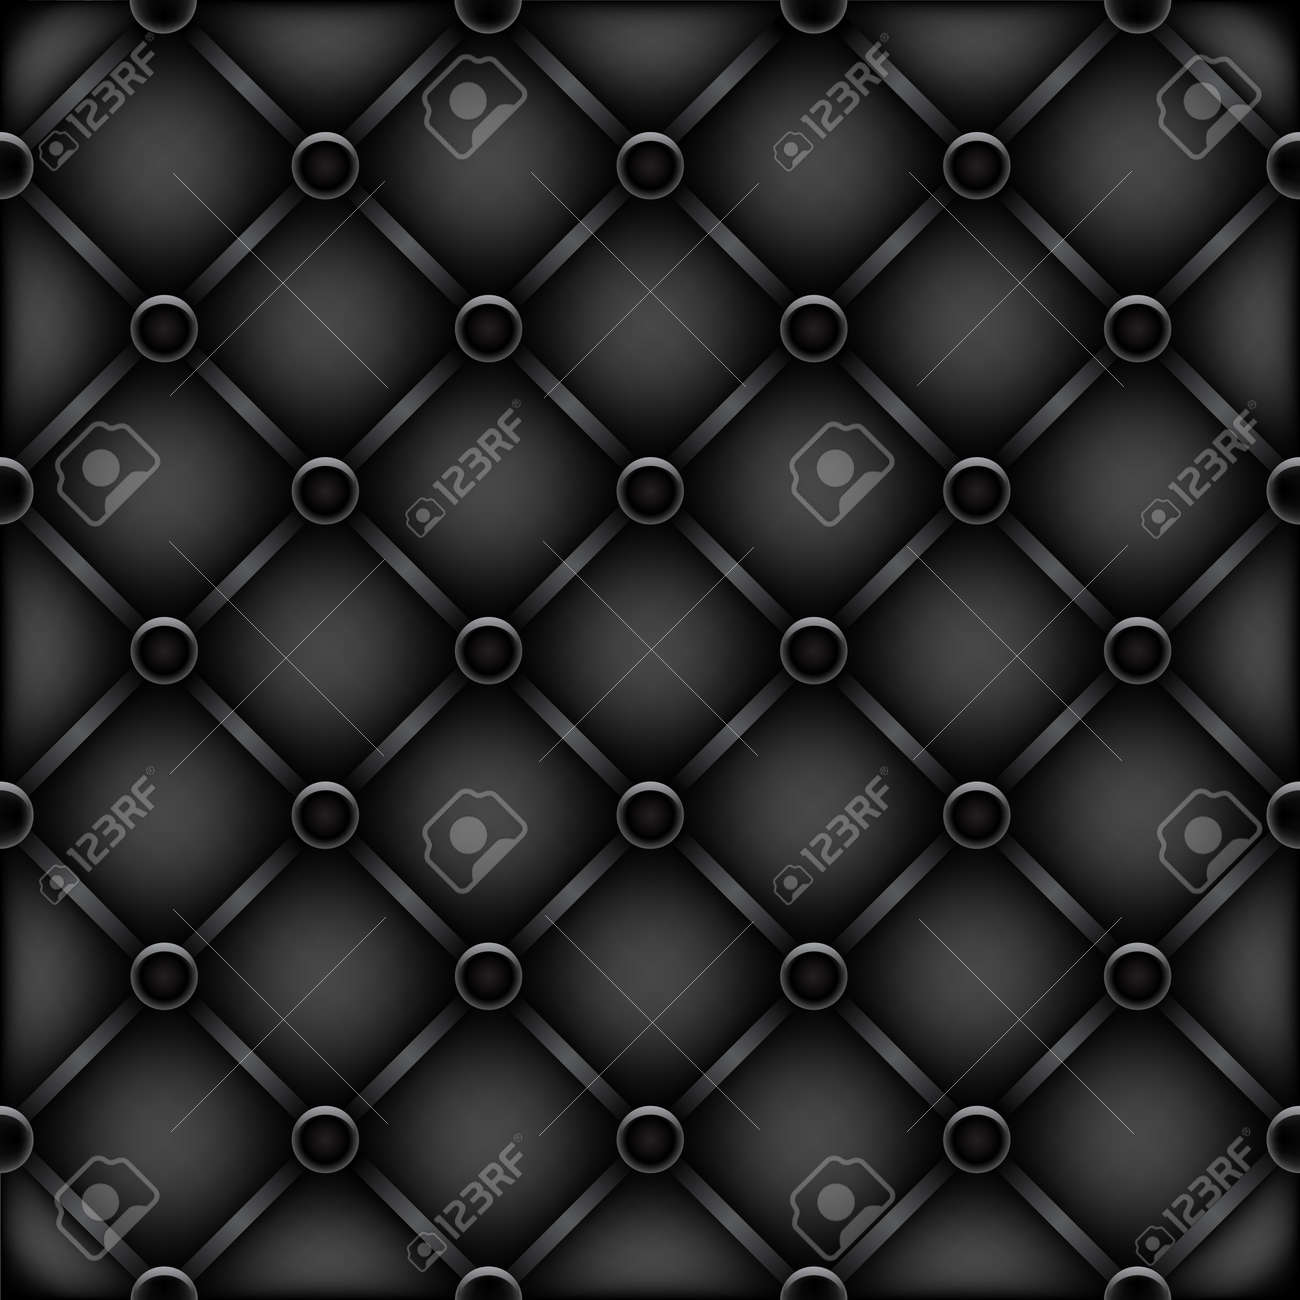 Black leather chair texture - Vector Black Leather Furniture Texture